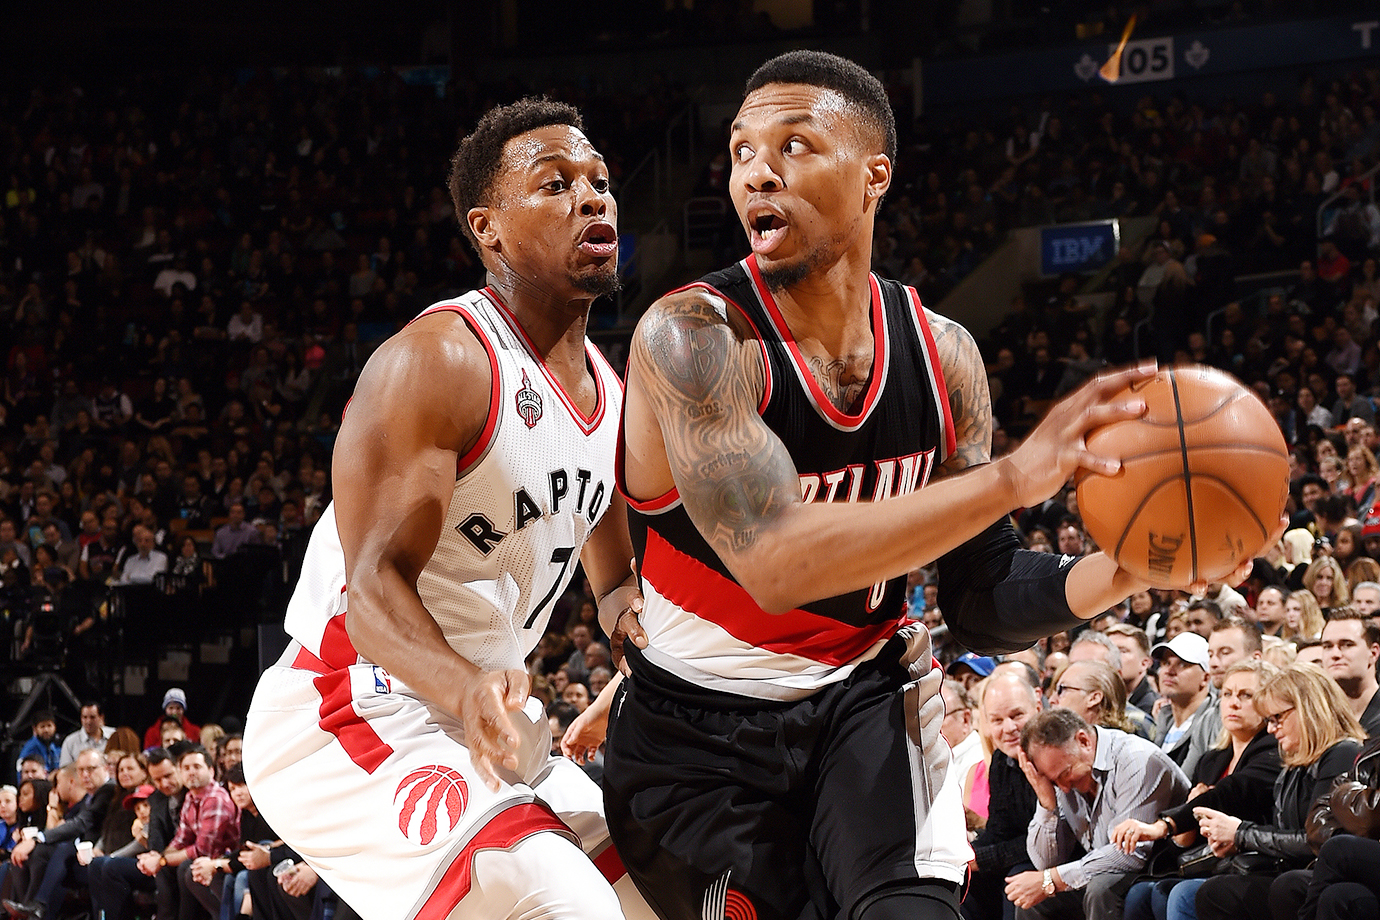 50 vs Toronto (March 4, 2016 — Pictured), 51 vs Golden State (Feb. 19, 2016)